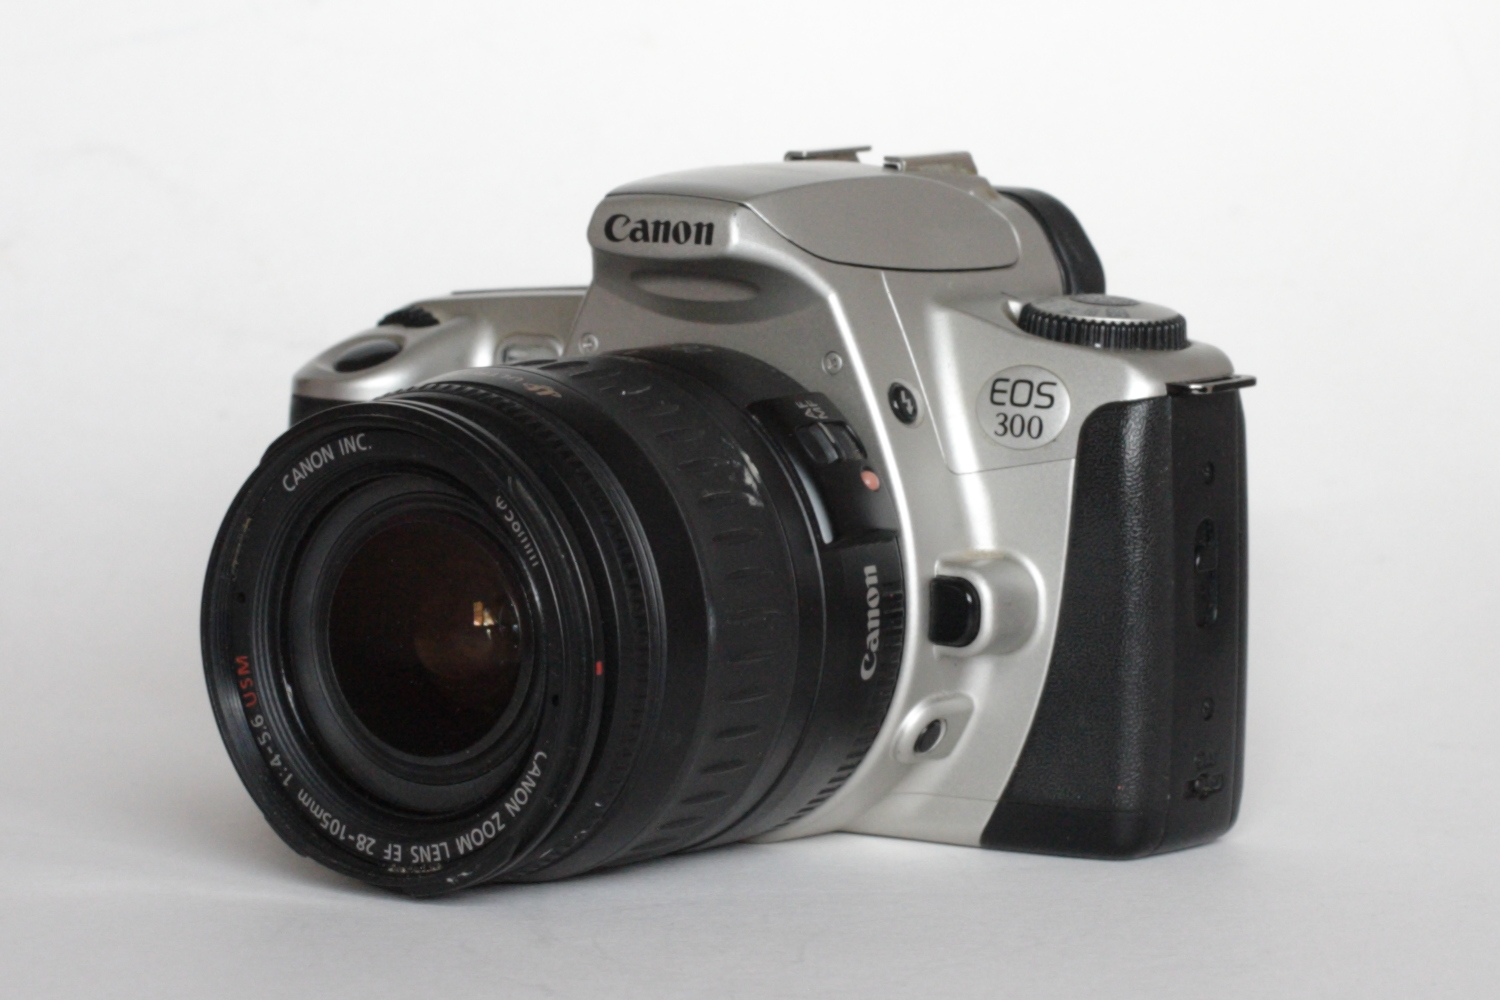 Canon EOS 300 Review - Not a great camera, but a great camera! - By Malcolm  Myers - 35mmc